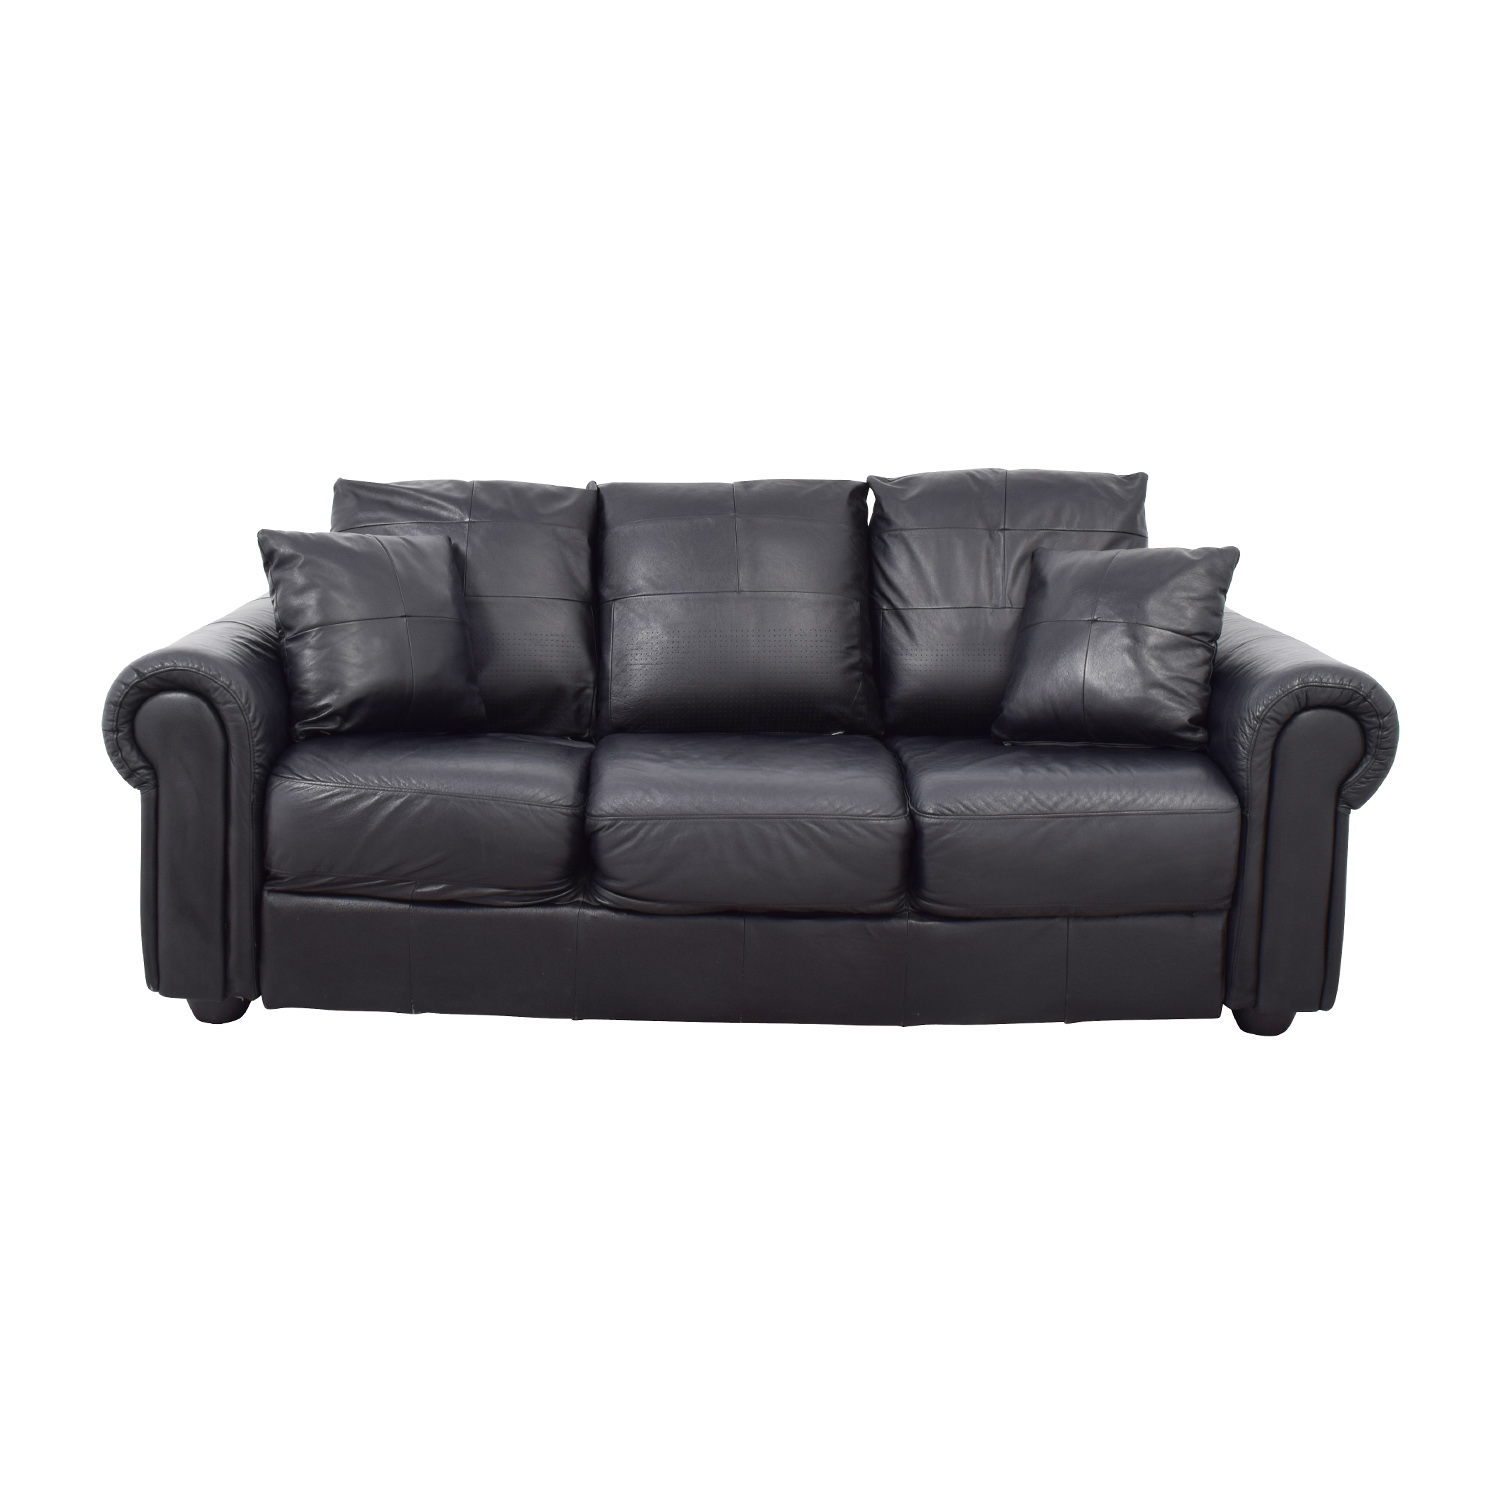 abc sofa bed cheap uk 58 off carpet and home black